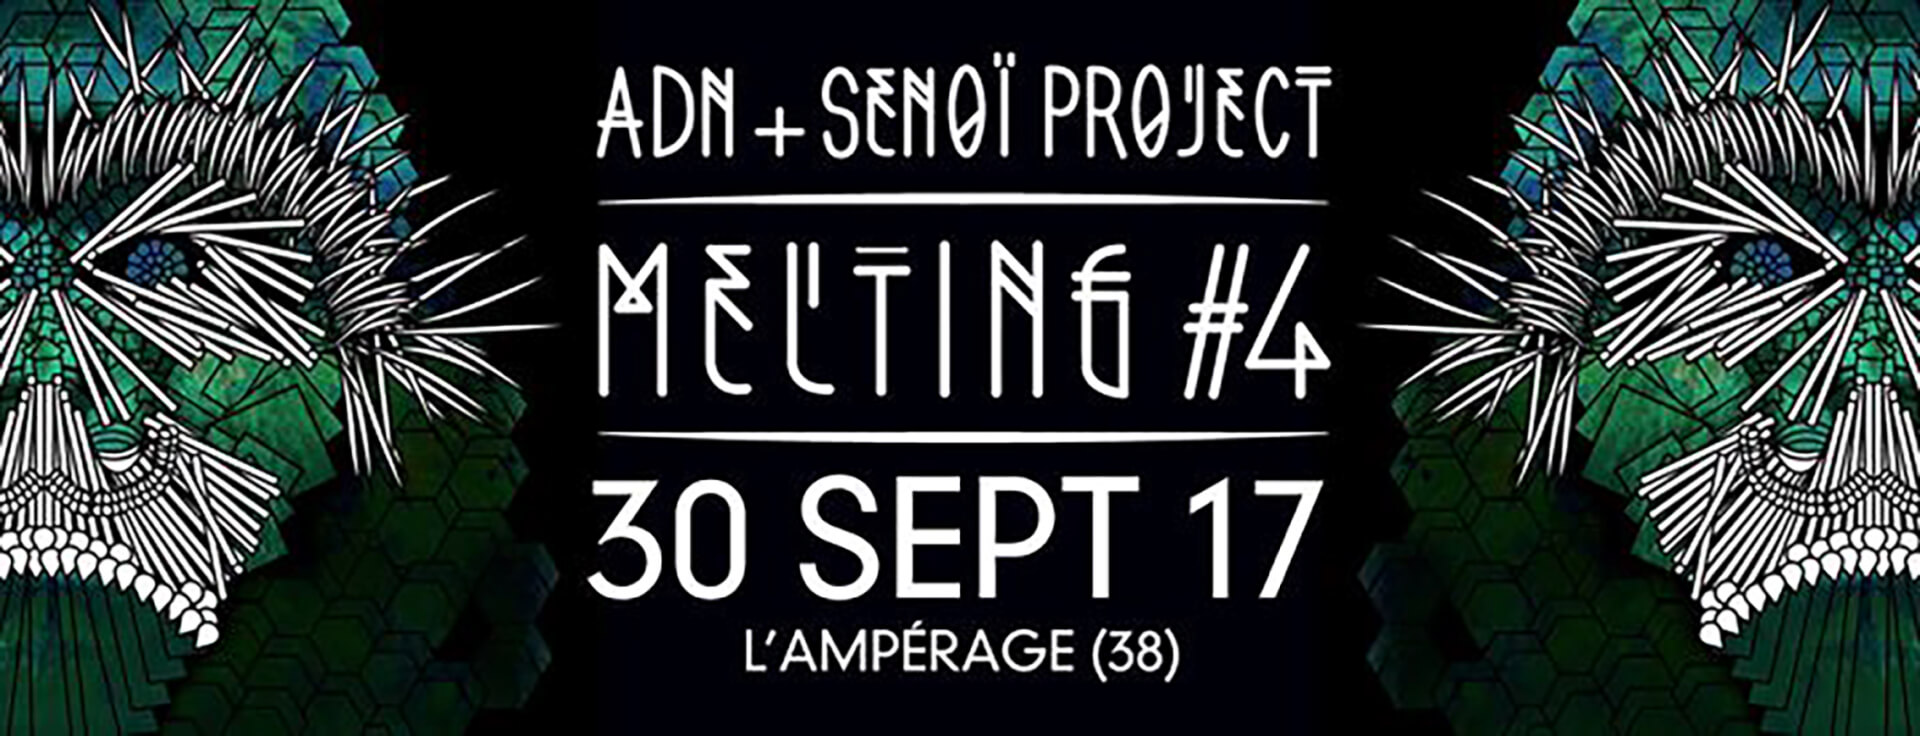 ► MELTING #4 – ADN vs SENOÏ PROJECT SAMEDI 30 SEPTEMBRE 2017